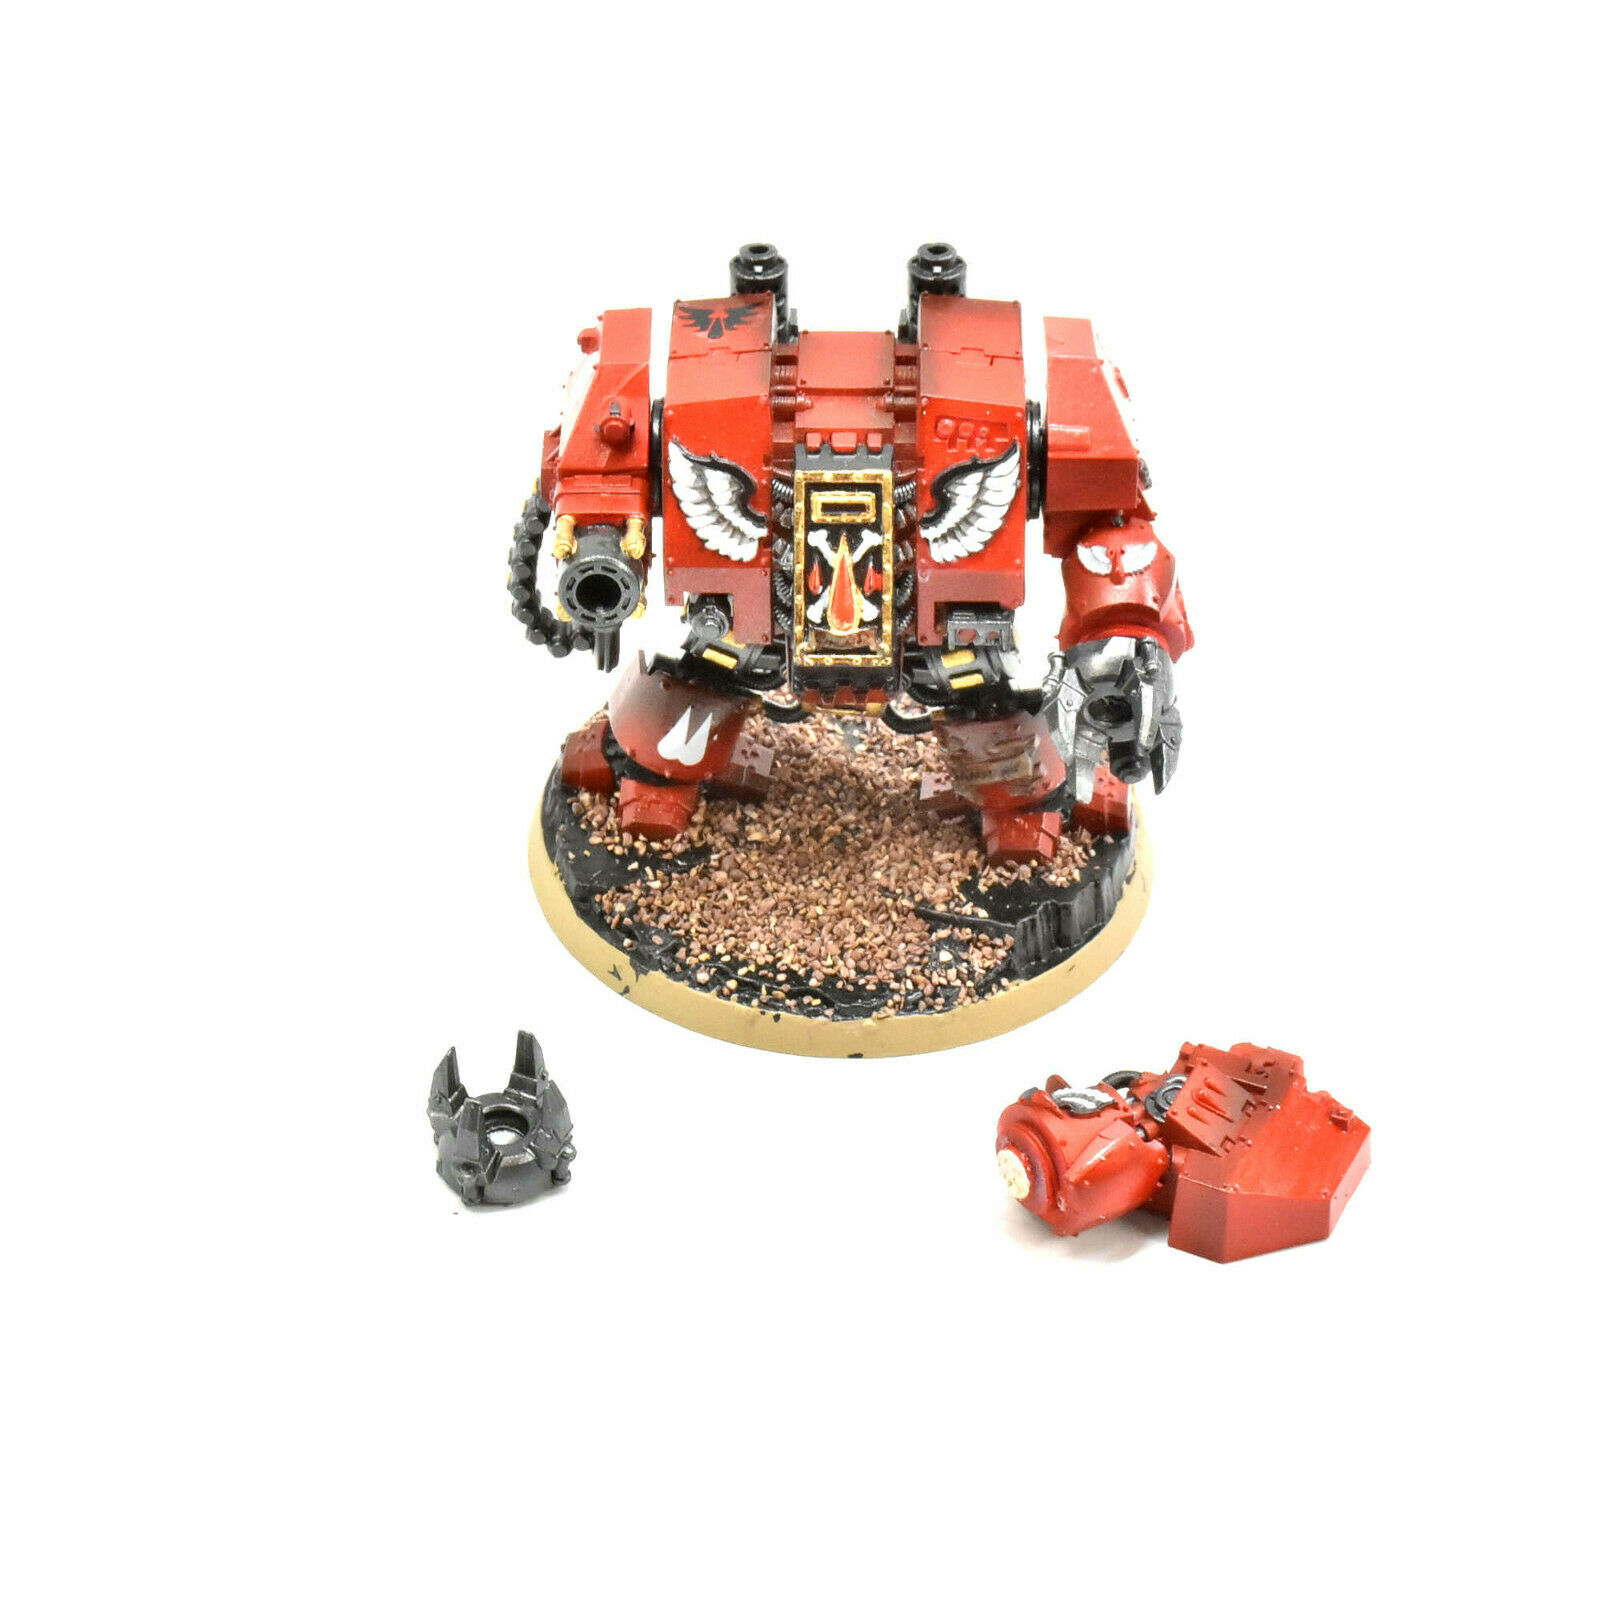 BLOOD ANGELS Furioso Dreadnought WELL PAINTED Warhammer 40K